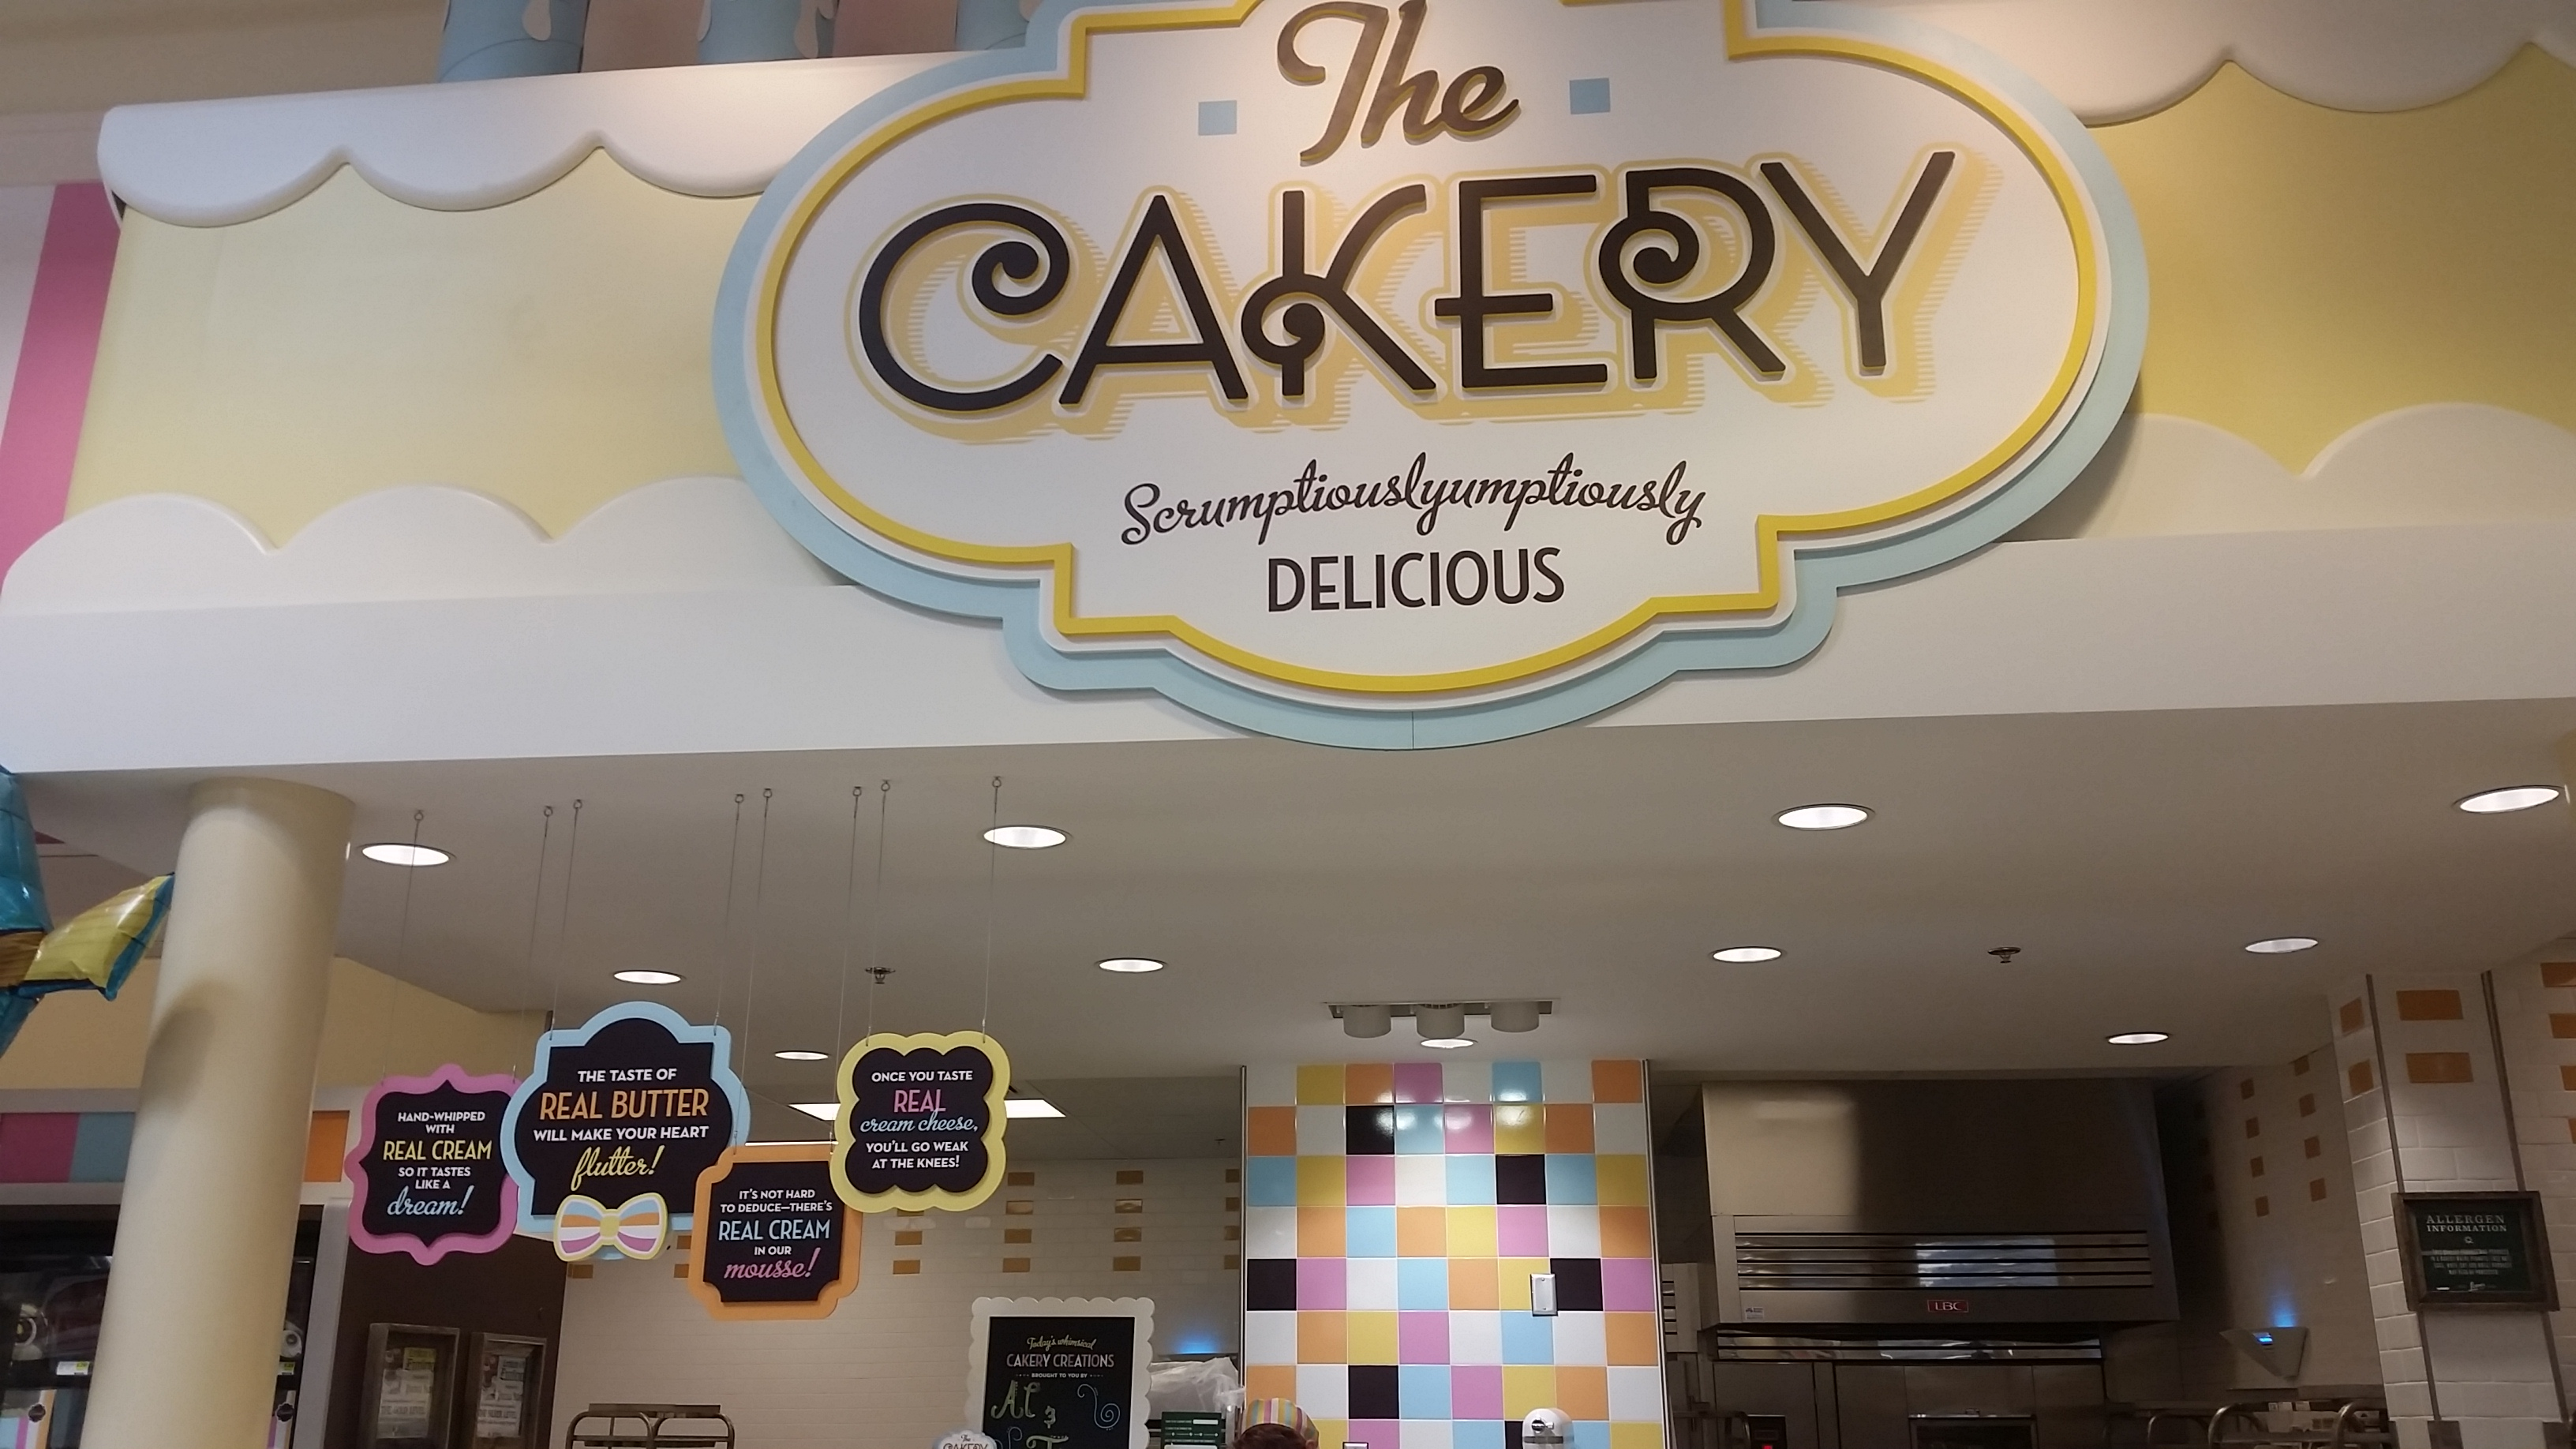 The in store Cakery bake shop